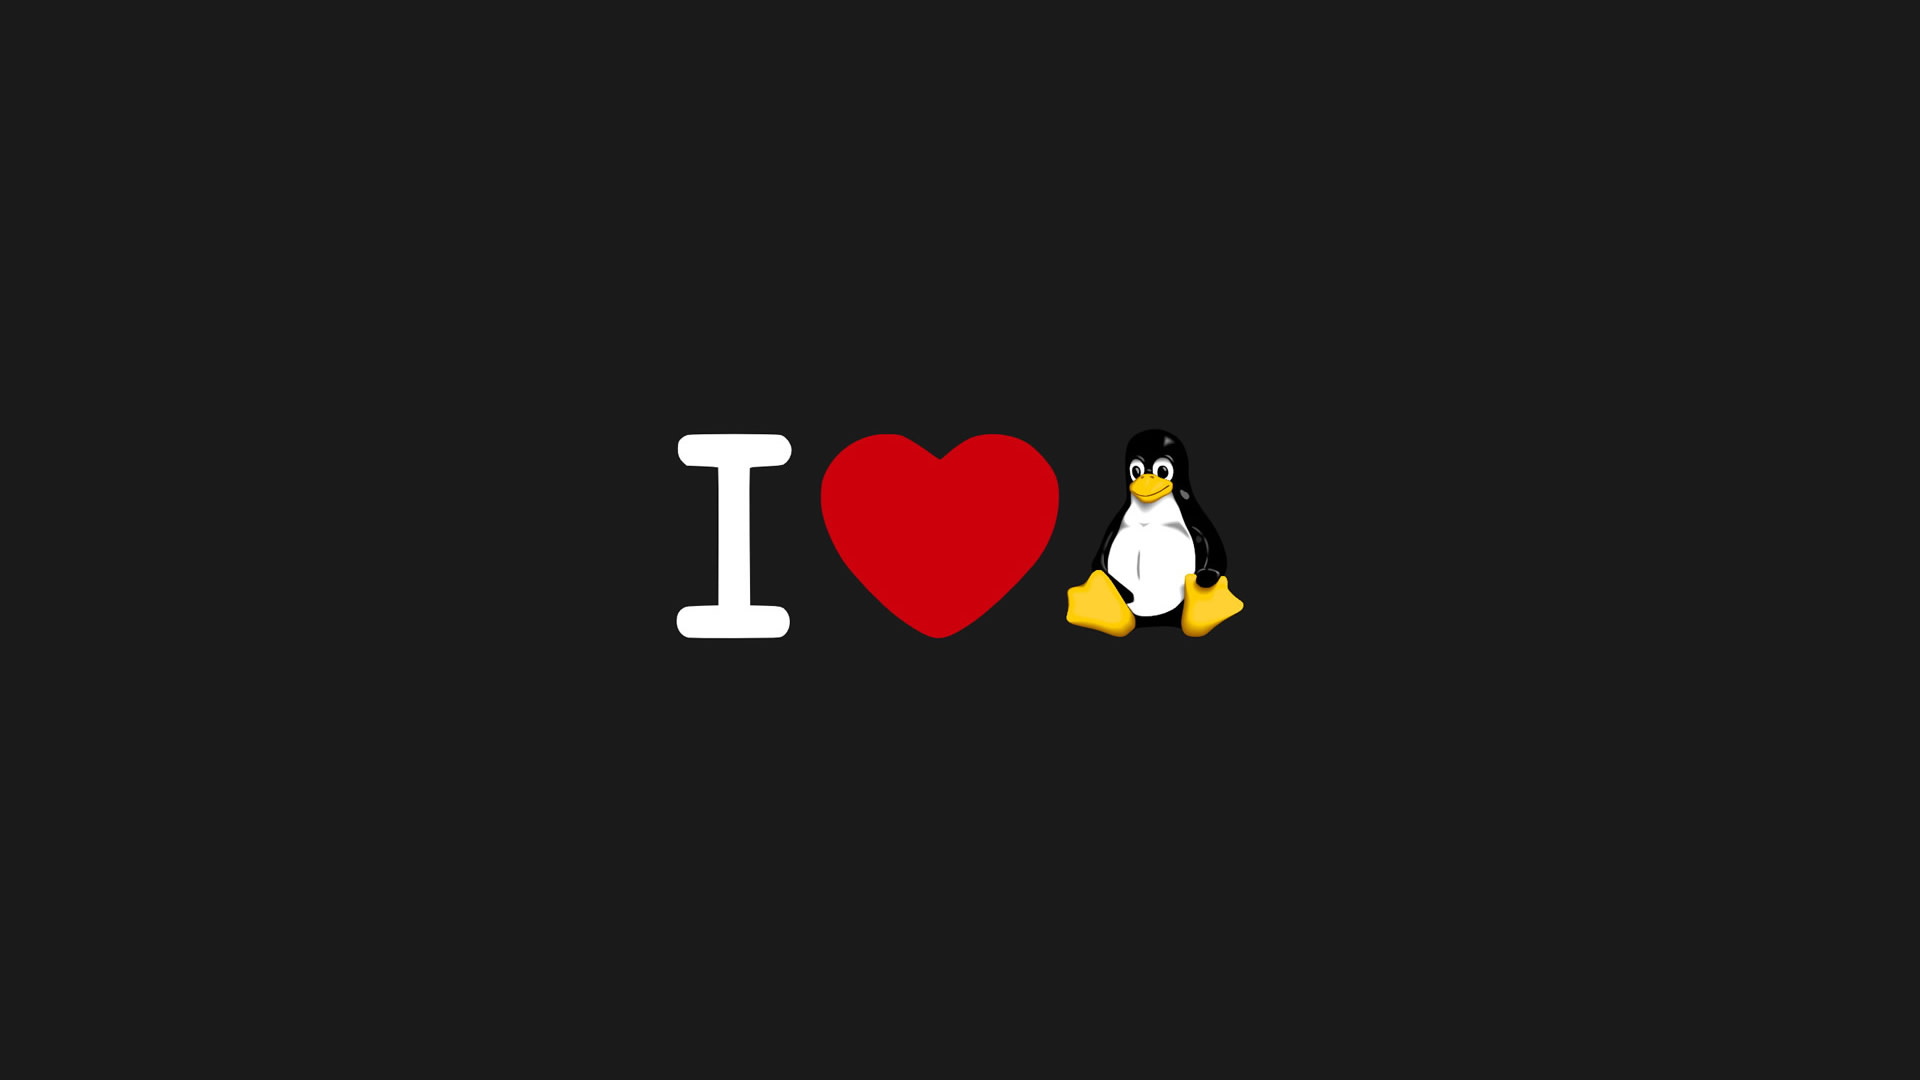 linux wallpapers HD 1920x1080